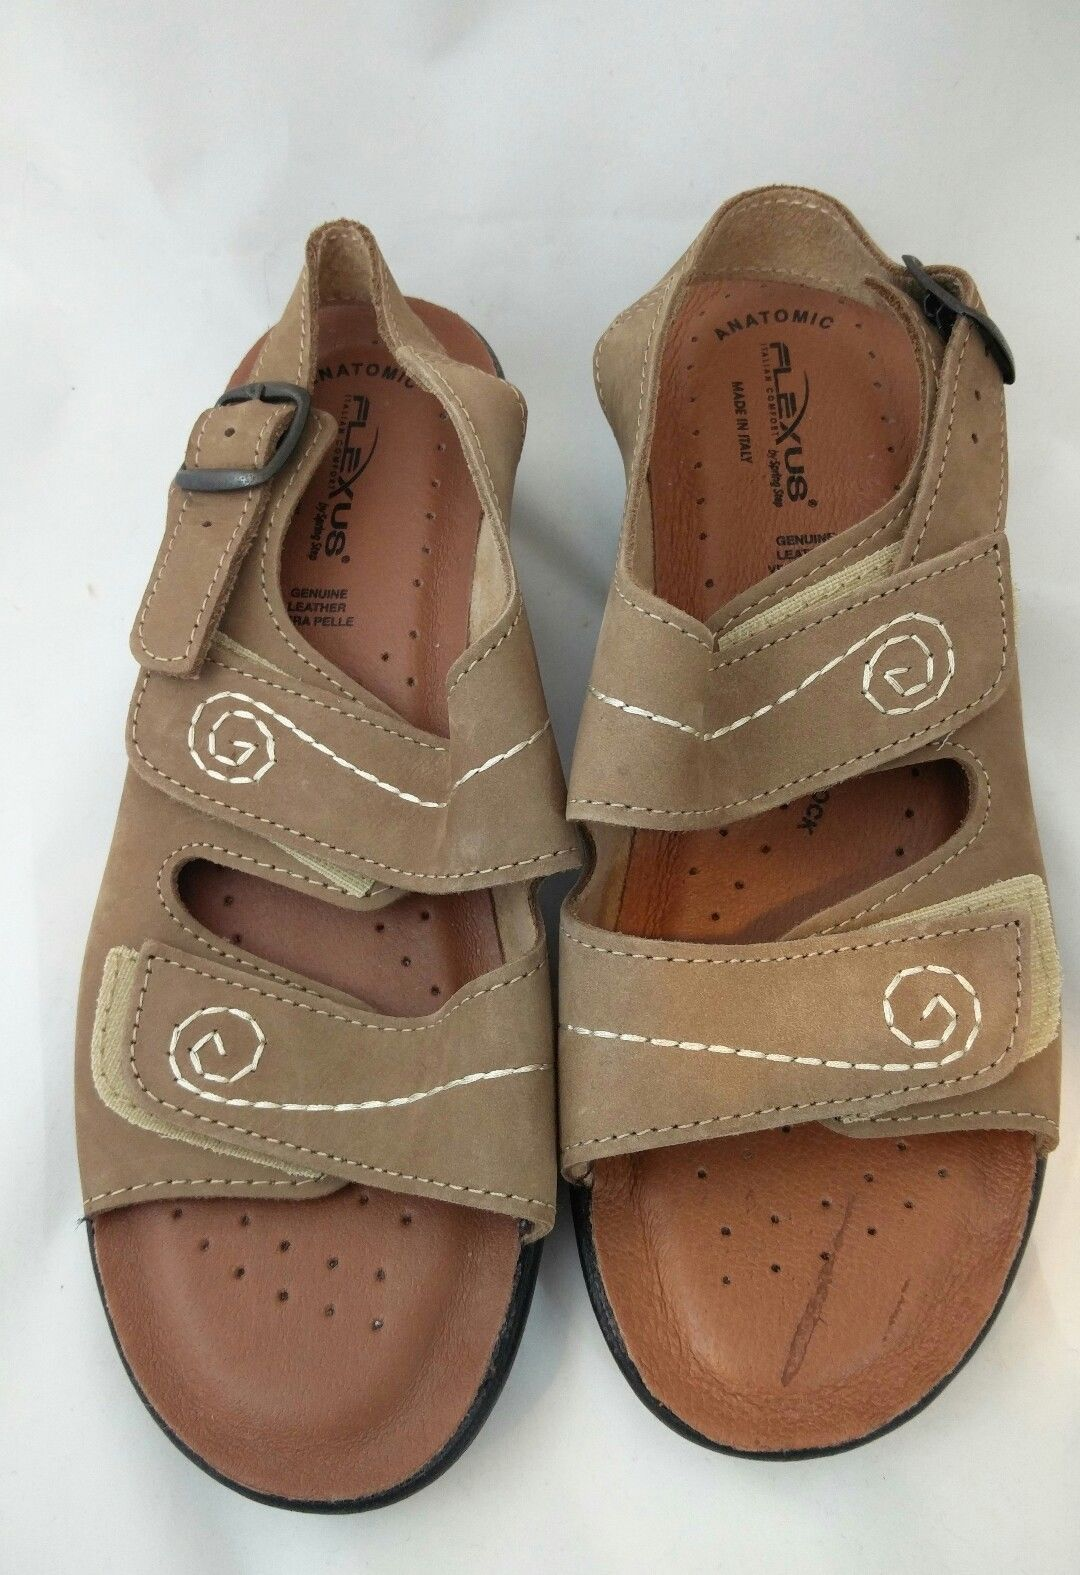 Flexus by Spring Step Womens 38 (7.5 - 8) Belamar Beige Open Toe Nubuck Sandal